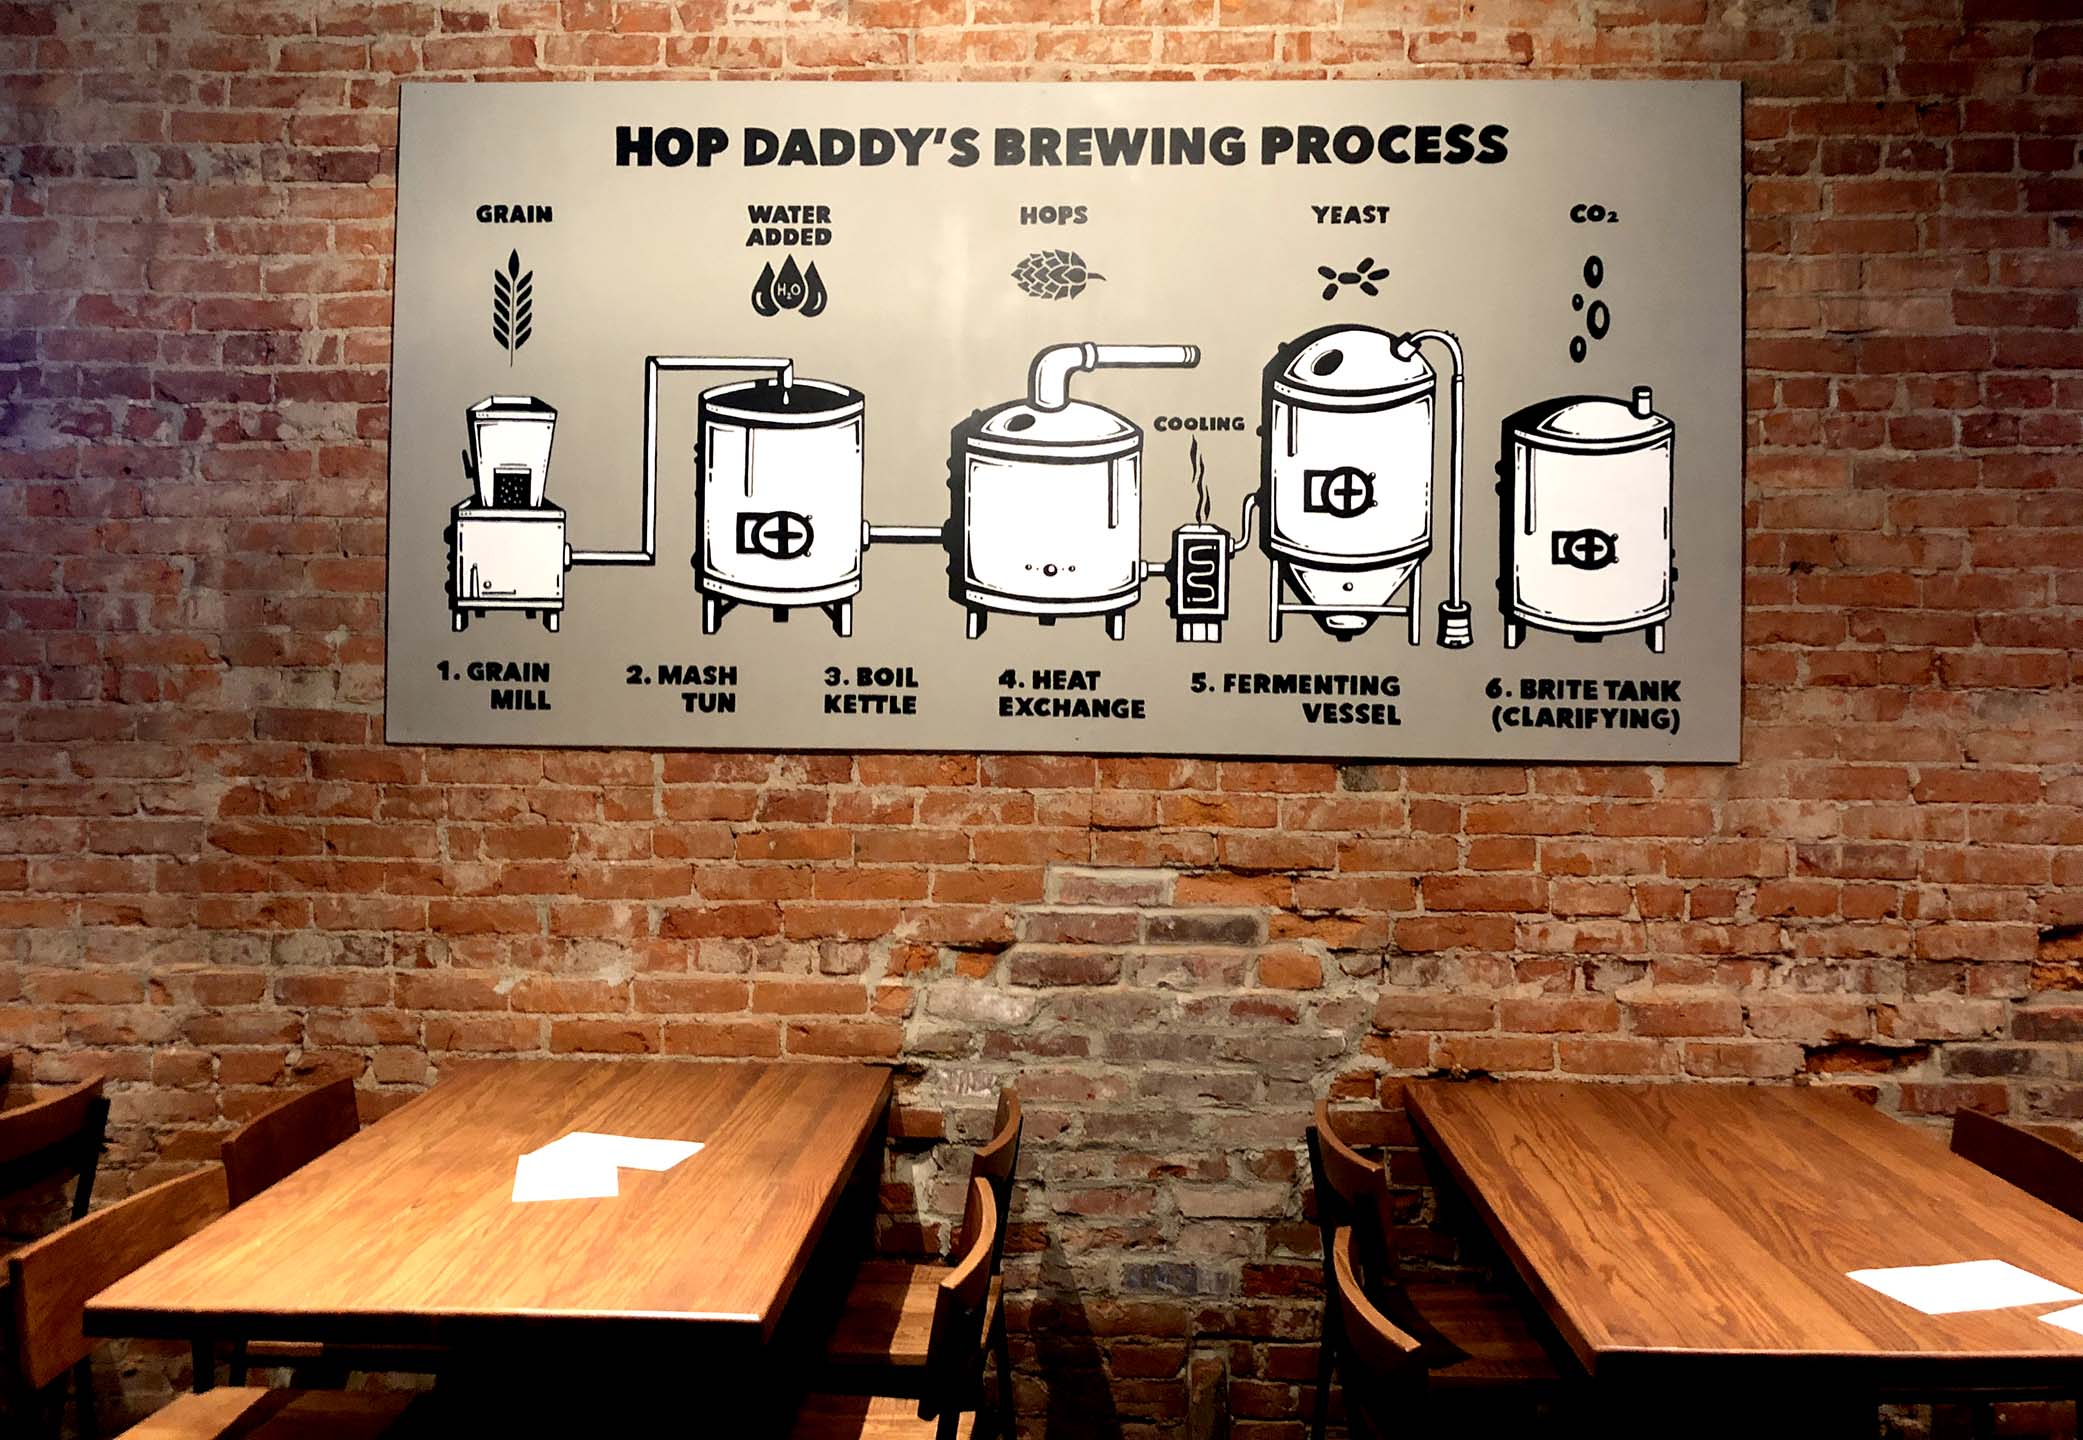 dripped-on-hop-daddy's-allentown-brew-process-illustration